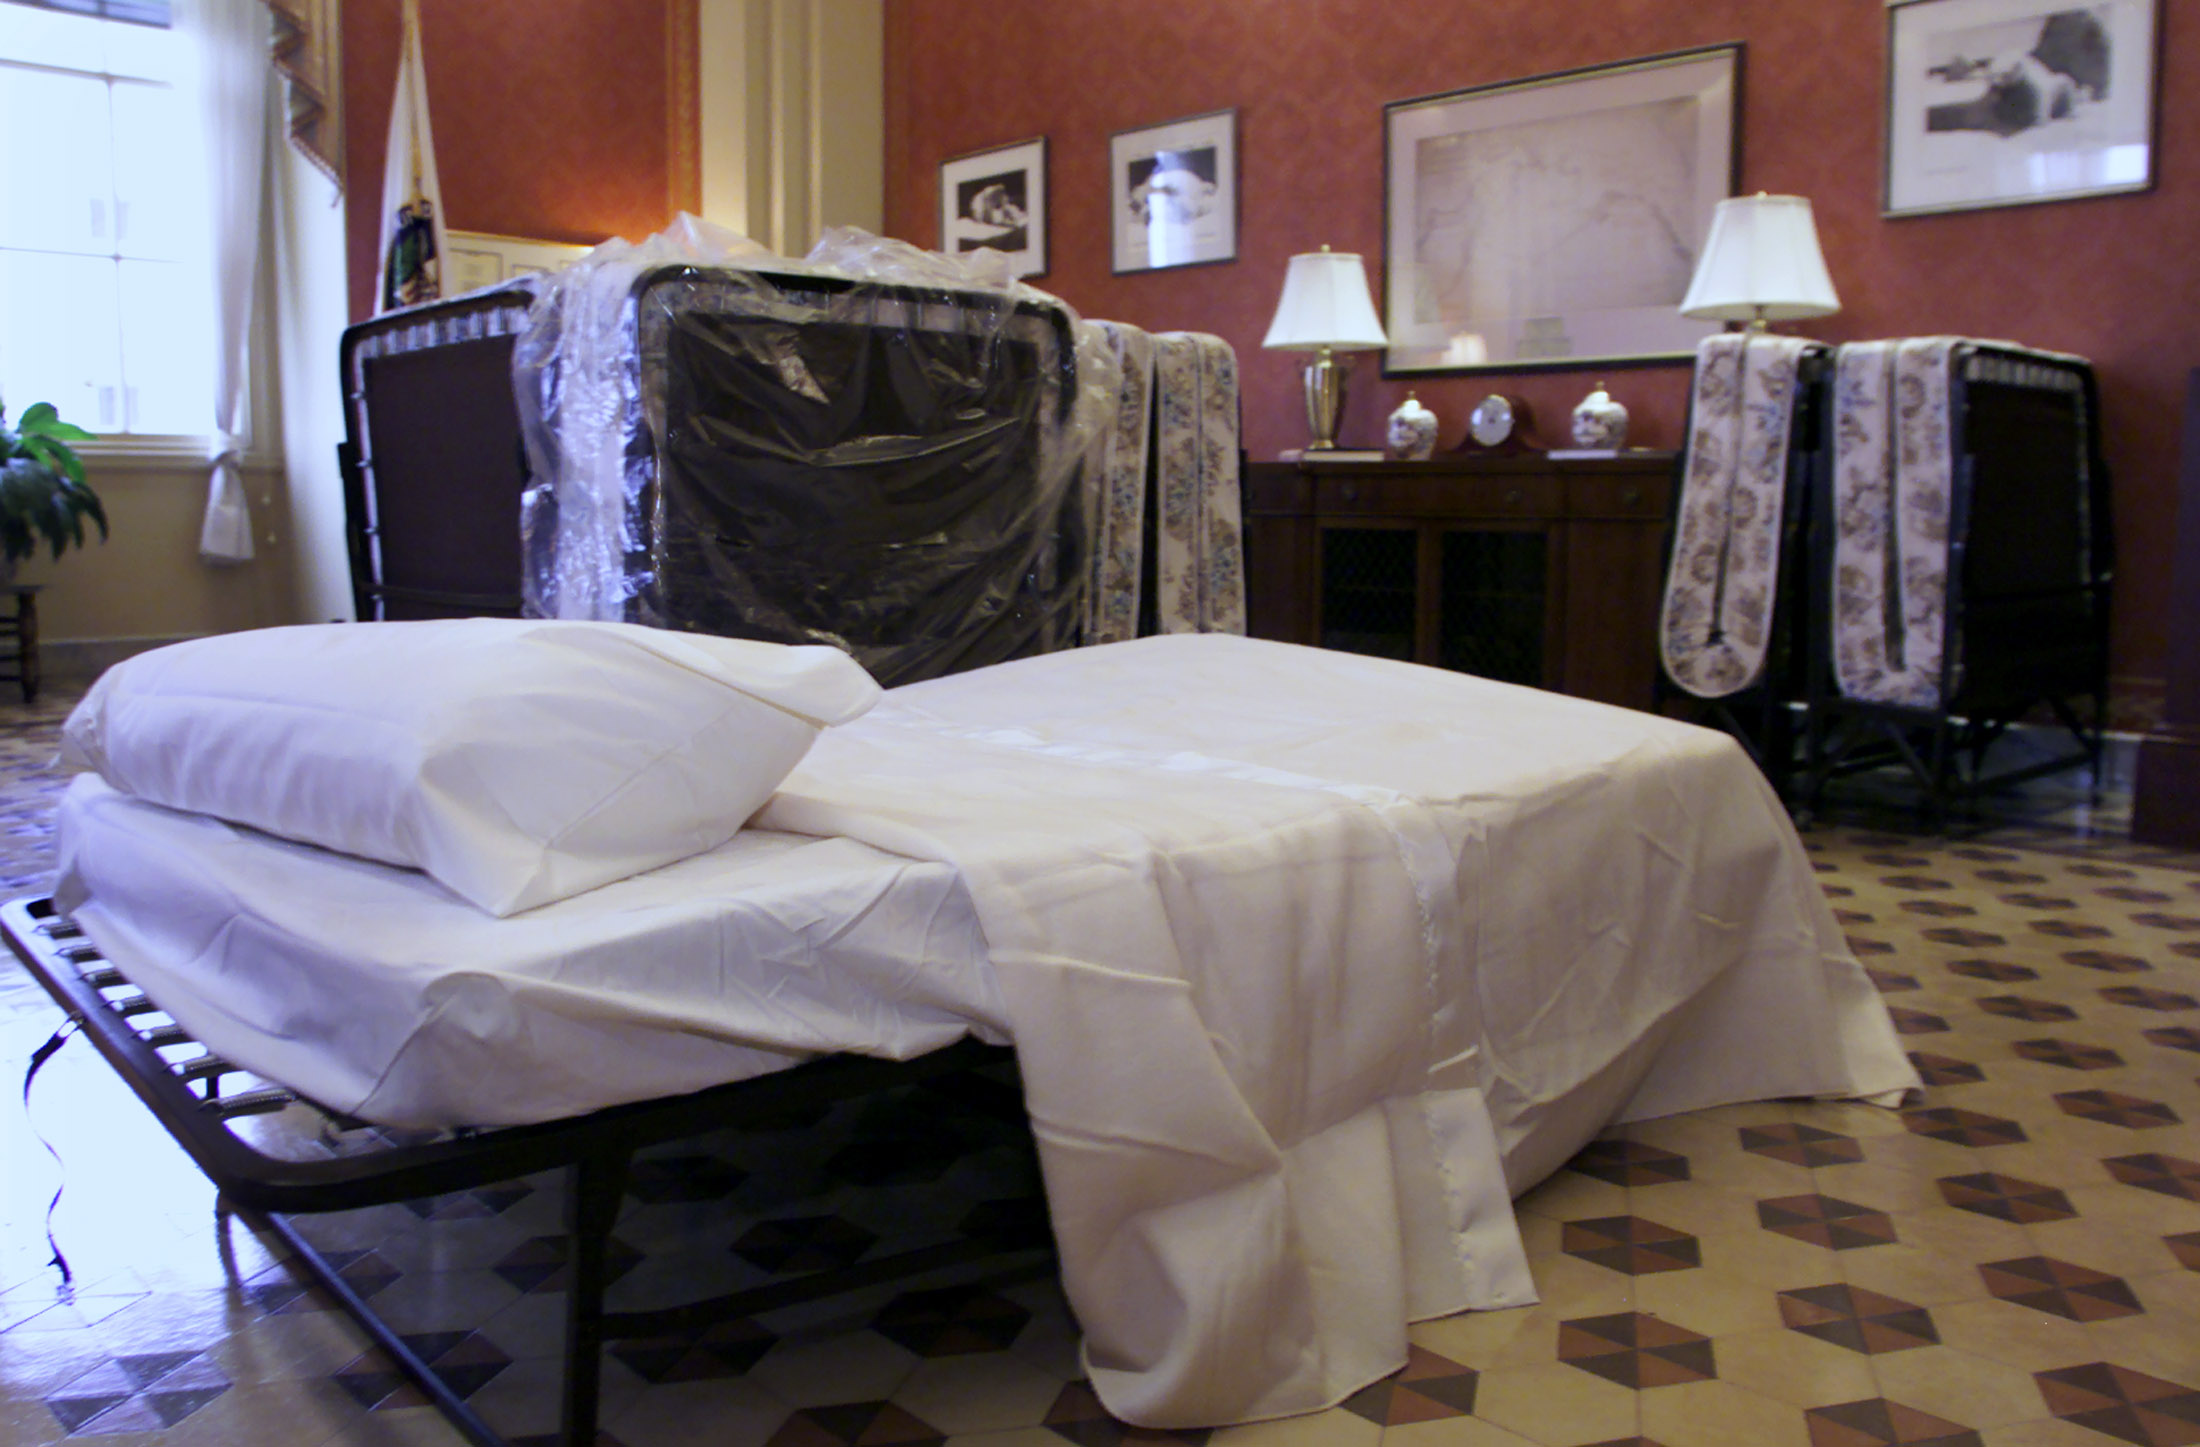 Senate Republicans set up beds in the Strom Thurmond Room of the U.S. Capitol in Washington, November 12, 2003. REUTERS/William Philpott